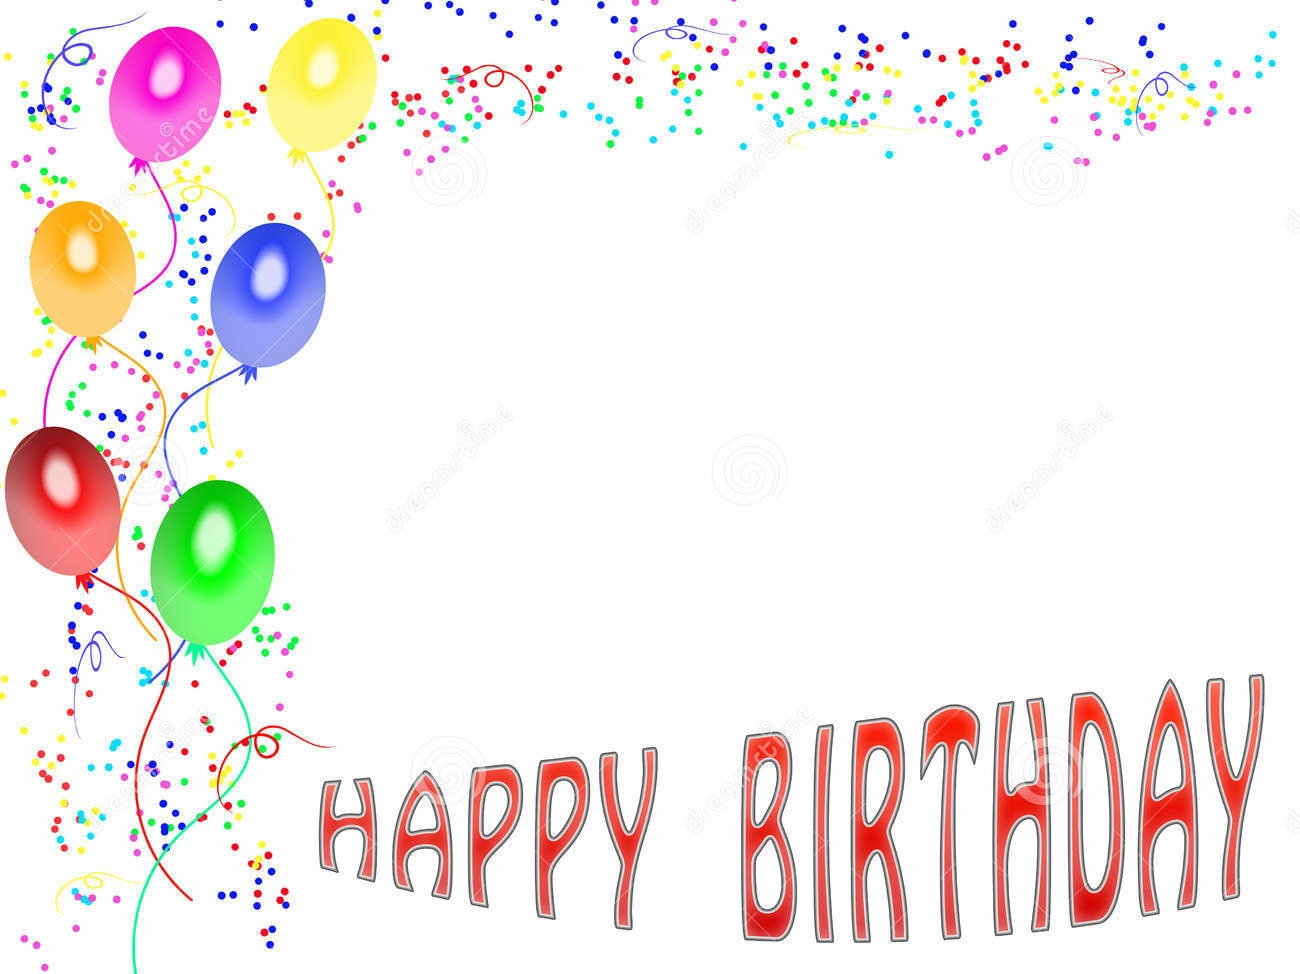 41+ Best Cute Happy Birthday Printable Cards. On Screen Ruler Cm. Write Your Own Will For Free Template. Word Template To Do List. Raffle Ticket Templates. Sports Flyers Templates. Sample Maternity Leave Letter To Employer Template. Microsoft Excel Financial Templates. Resume Sample For High School Students With Work Template